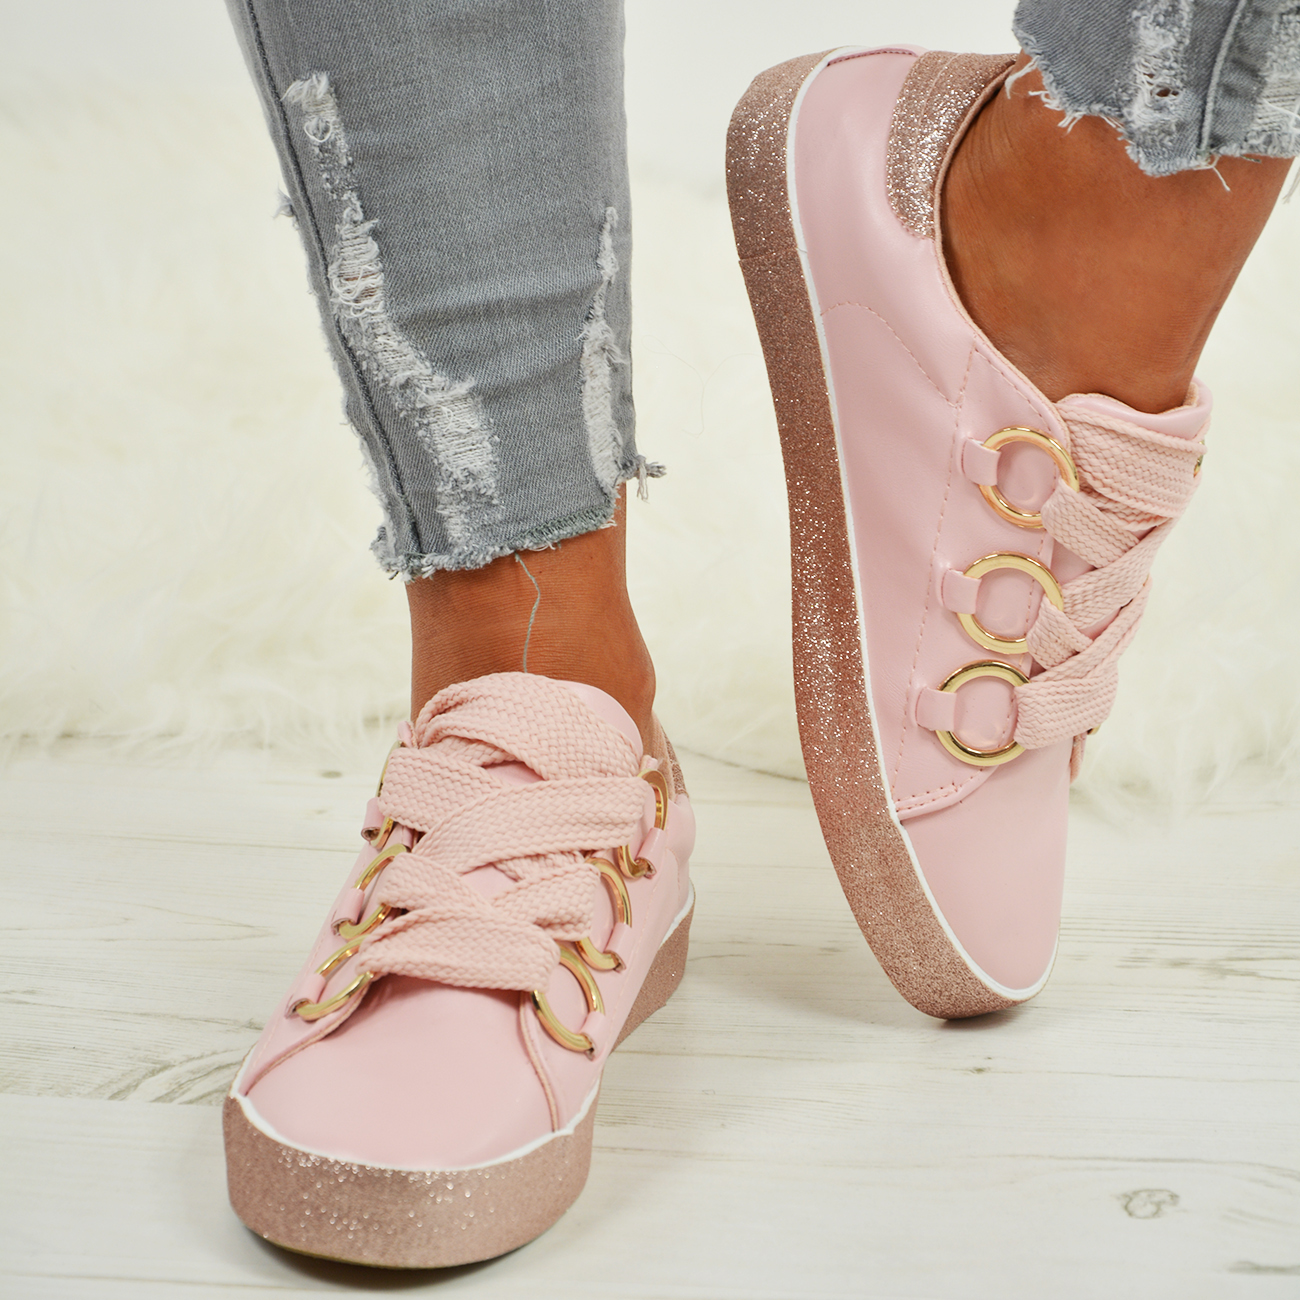 LADIES-WOMENS-GLITTER-SNEAKERS-SPARKLE-TRAINERS-LACE-UP-PLIMSOLL-PUMPS-SHOES thumbnail 13